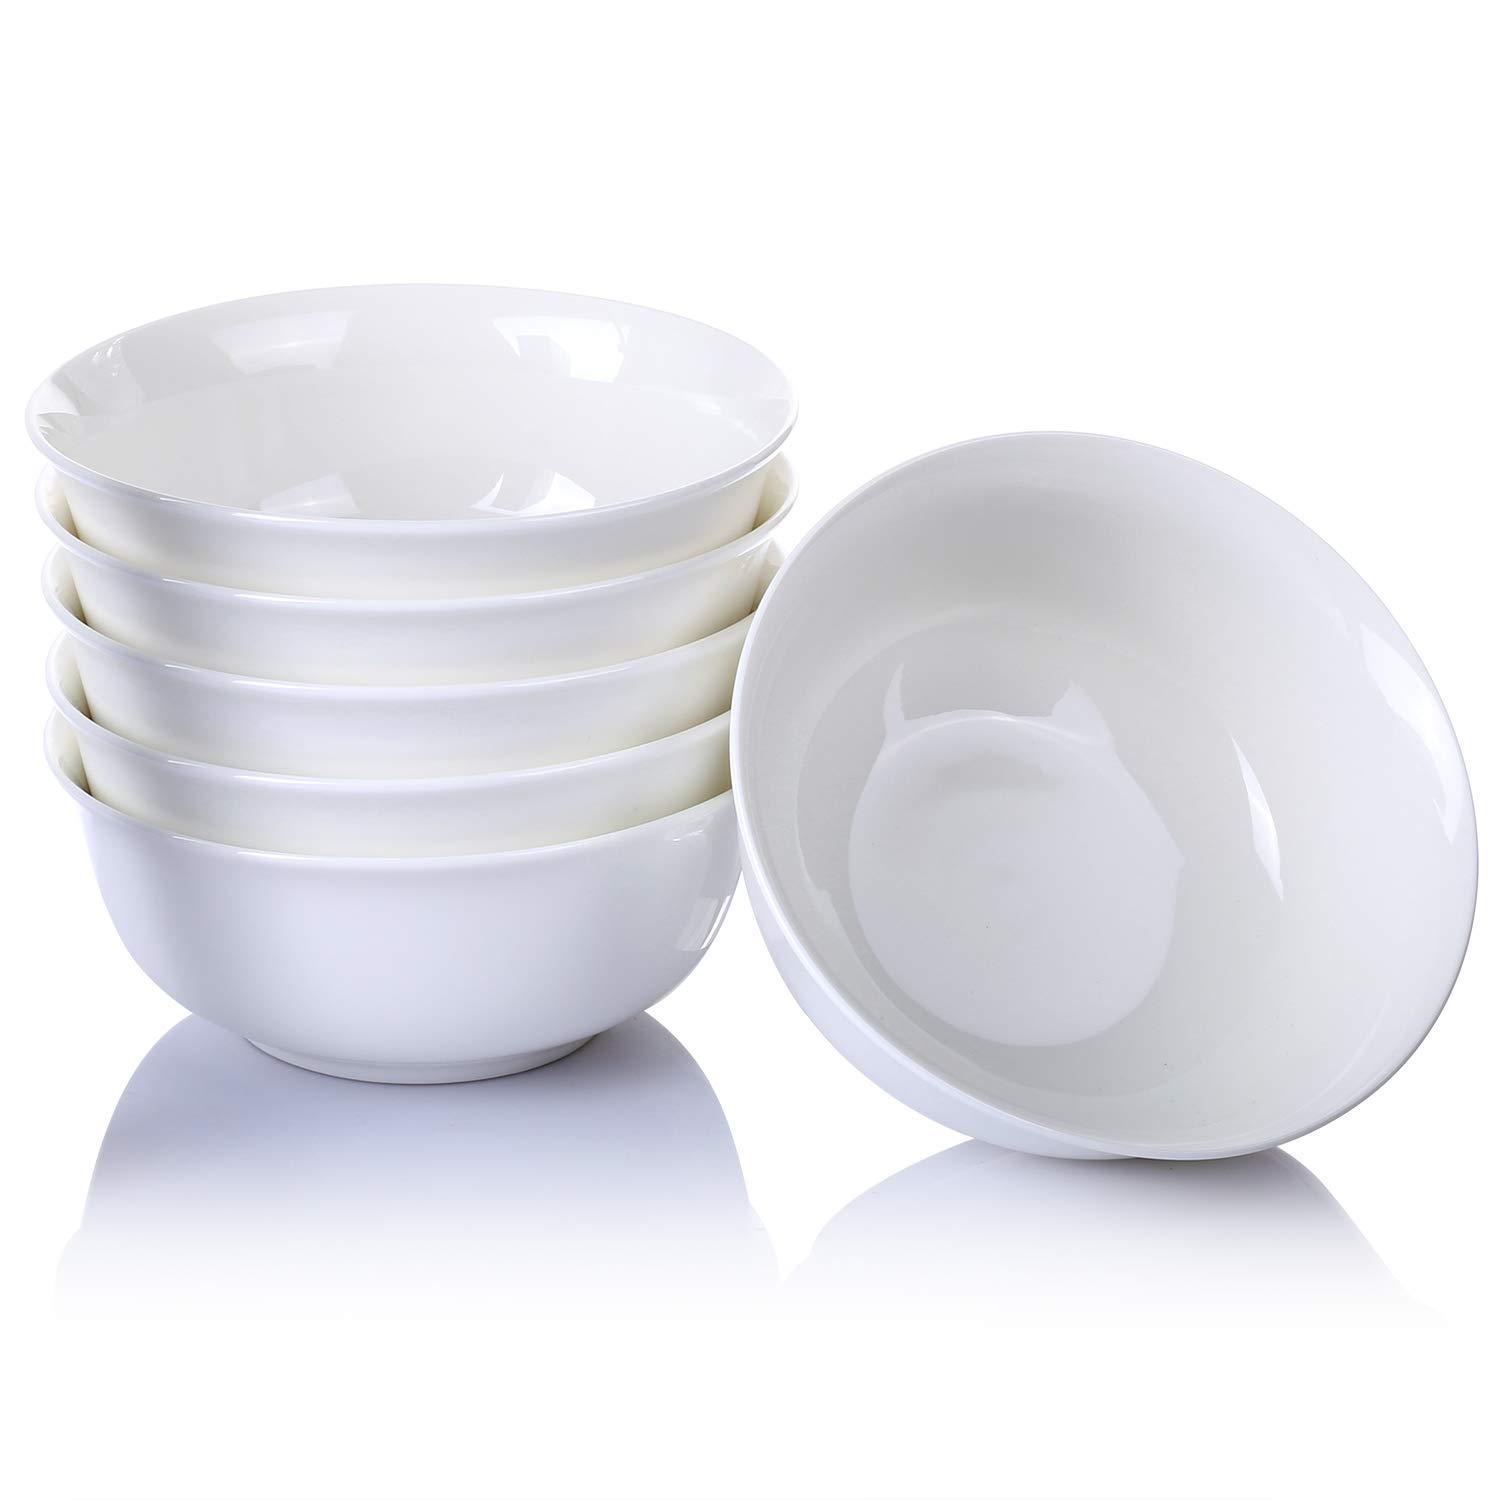 Alt-GT 24 Ounce Porcelain Bowl Set for Soup and Snacks - 6 Packs, White (24 Ounce)